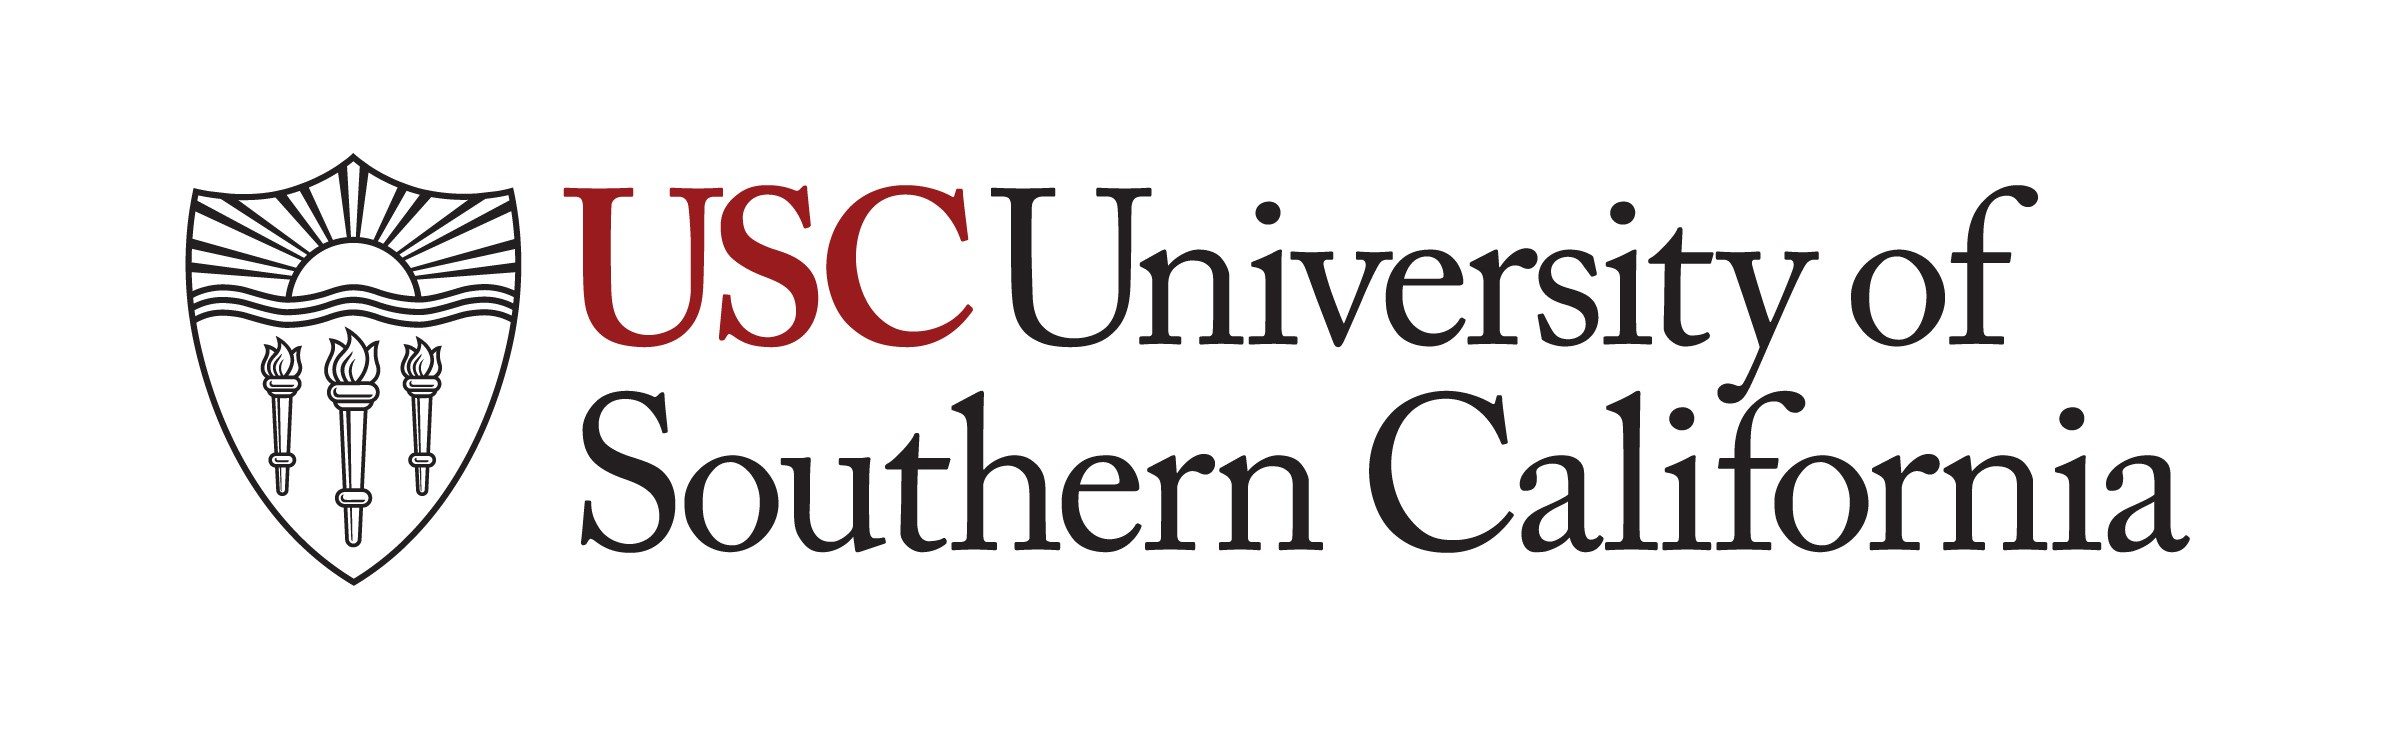 USC University of Southern California B.Radmissions essay